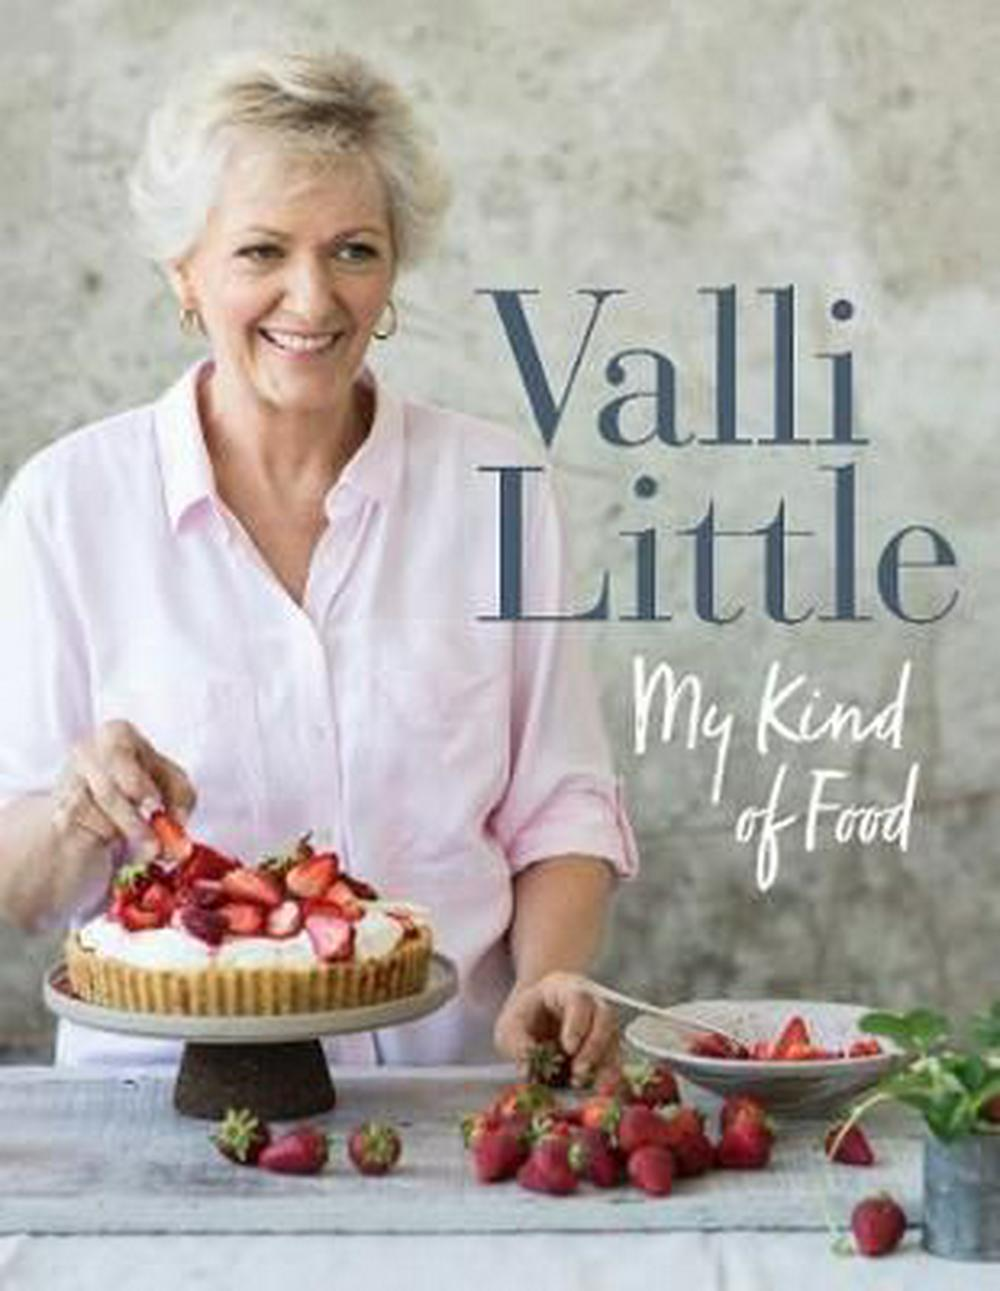 My Kind of Food by Valli Little, ISBN: 9780733335273